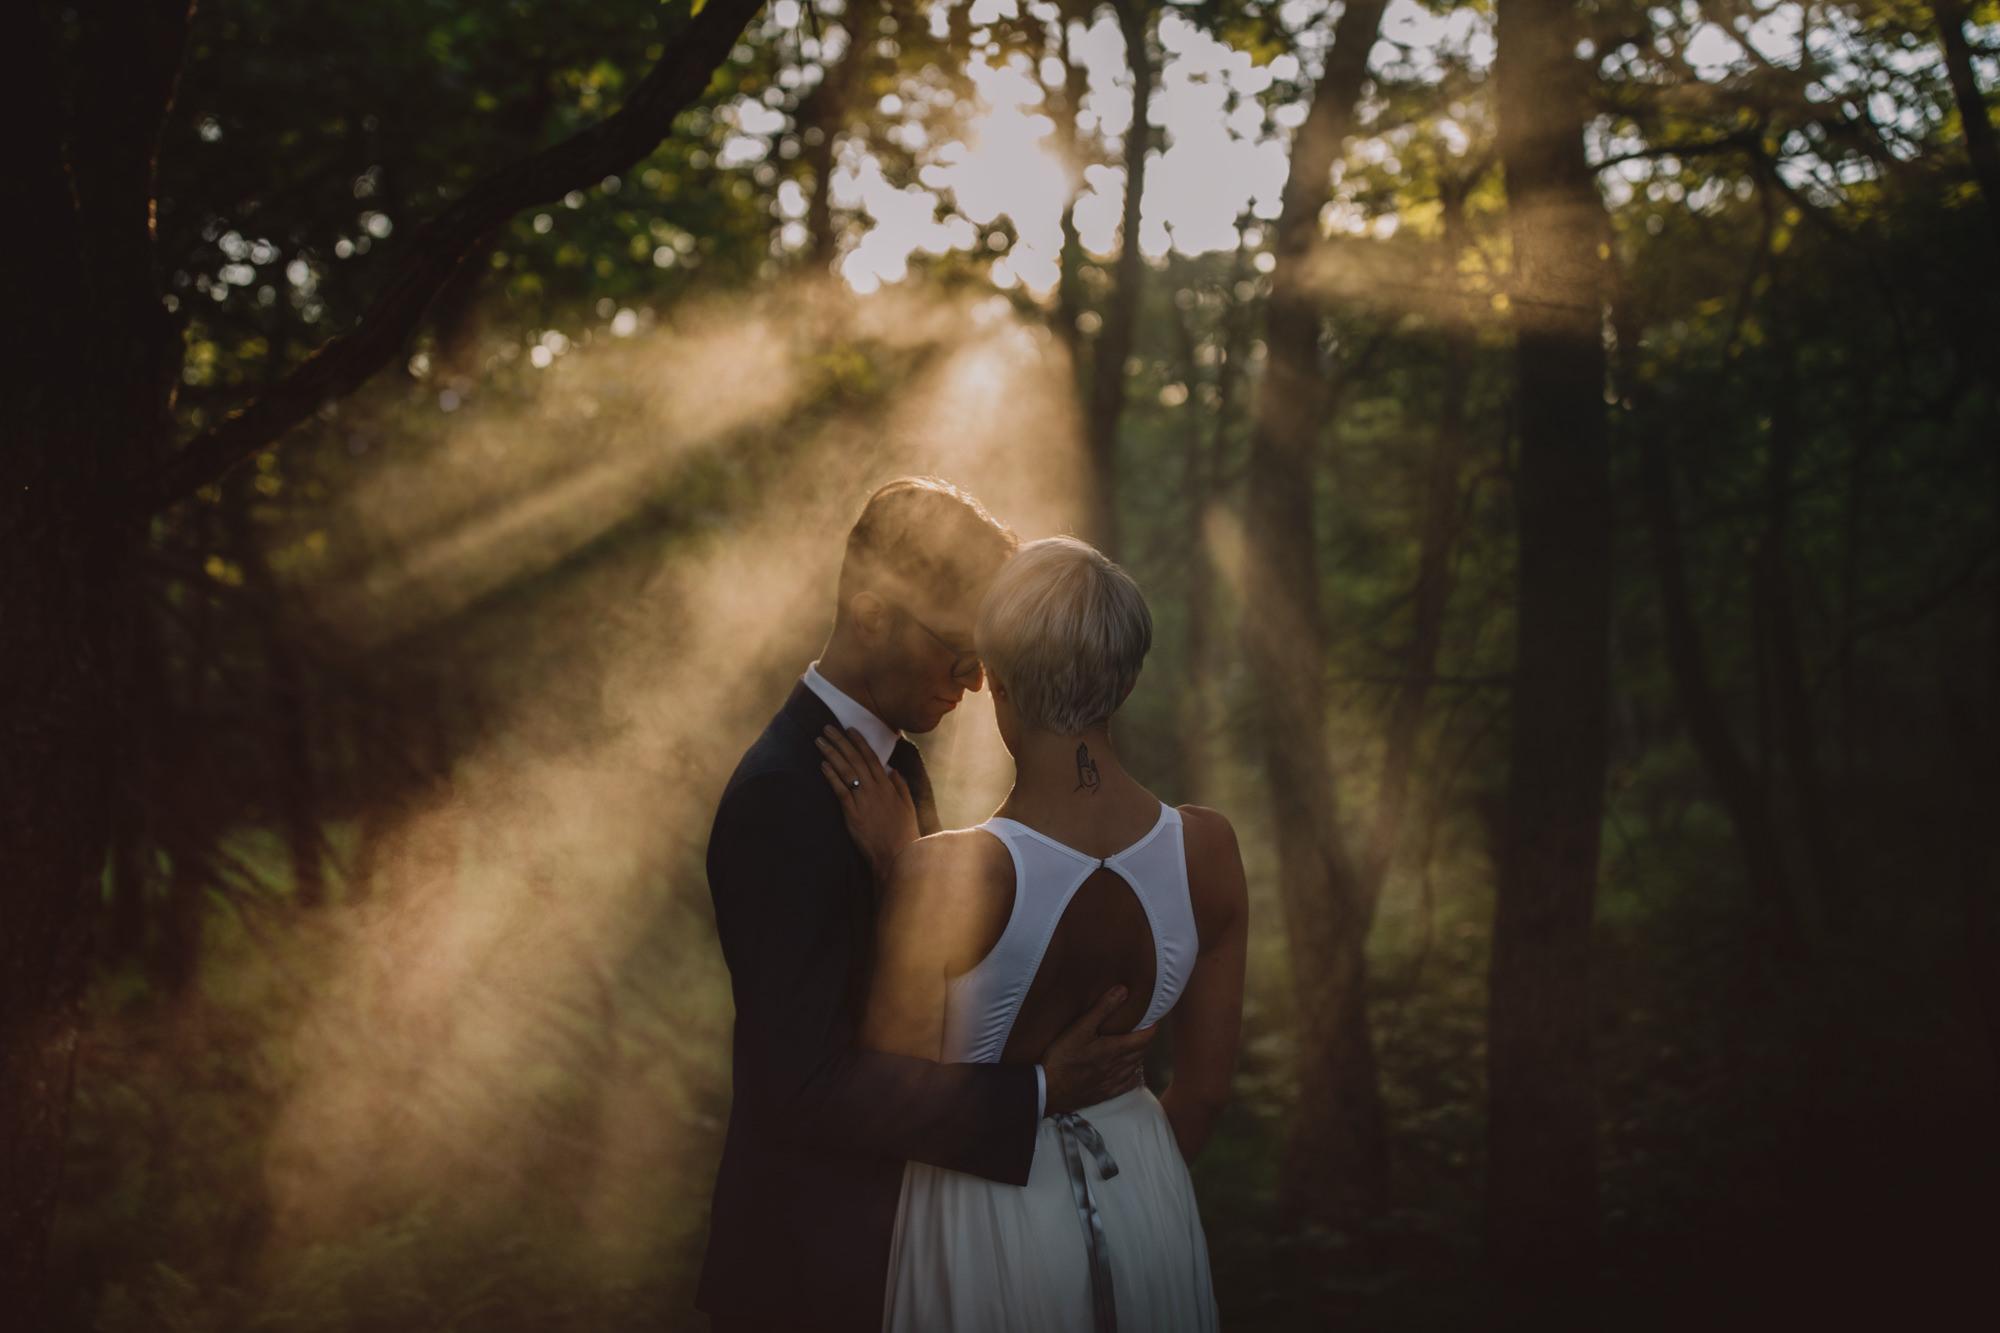 Couple in forest in sun rays - McClintock Photography Agency